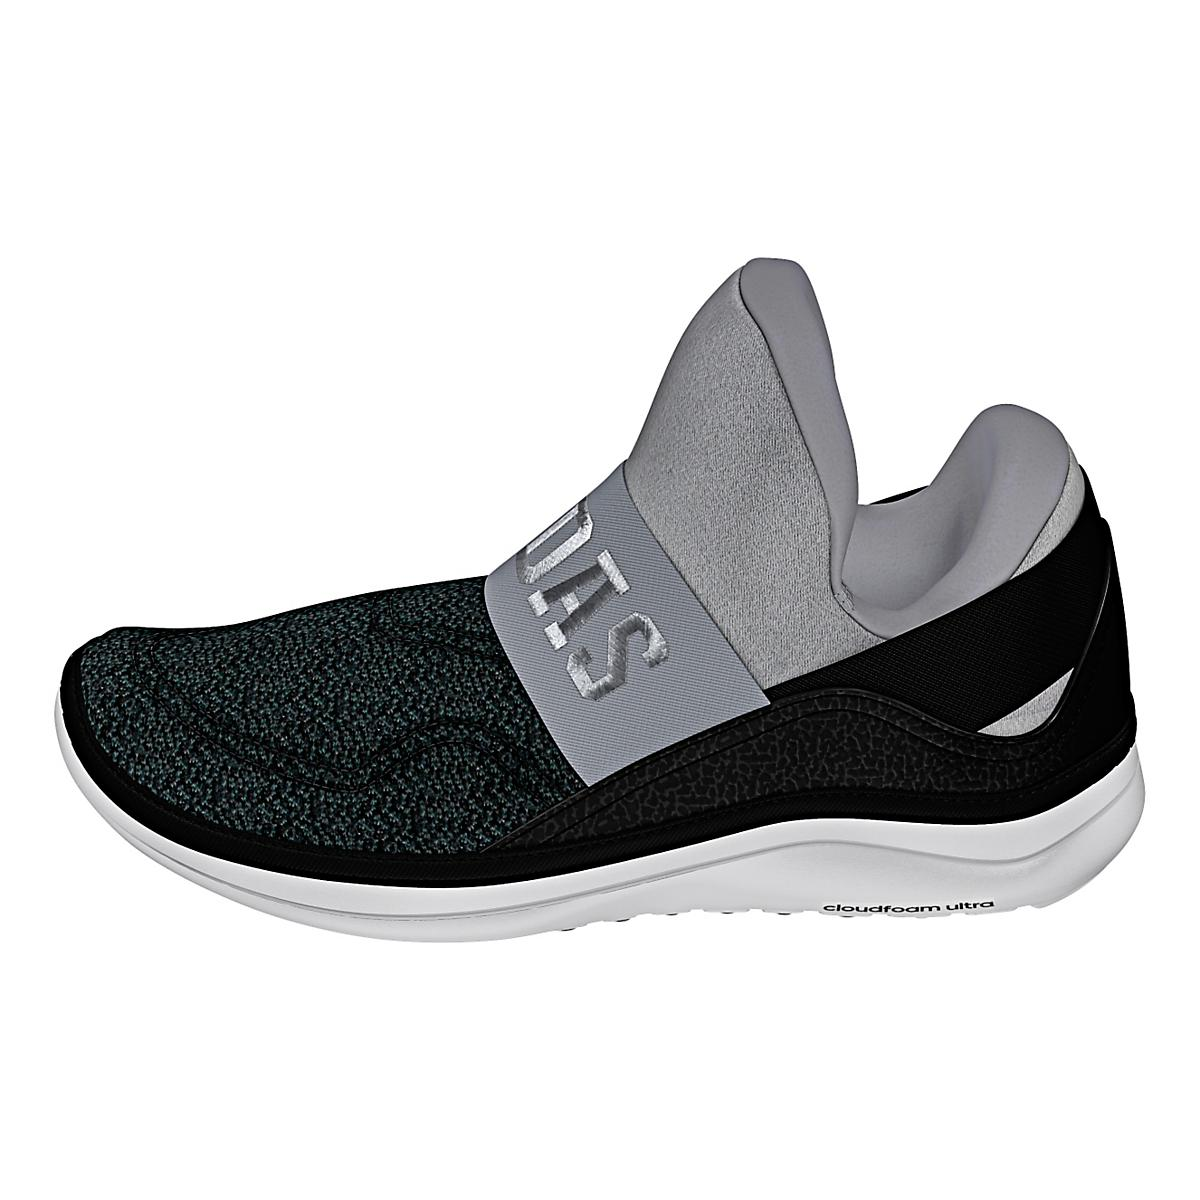 Mens adidas Cloudfoam Ultra Zen Casual Shoe at Road Runner Sports b4b83622e